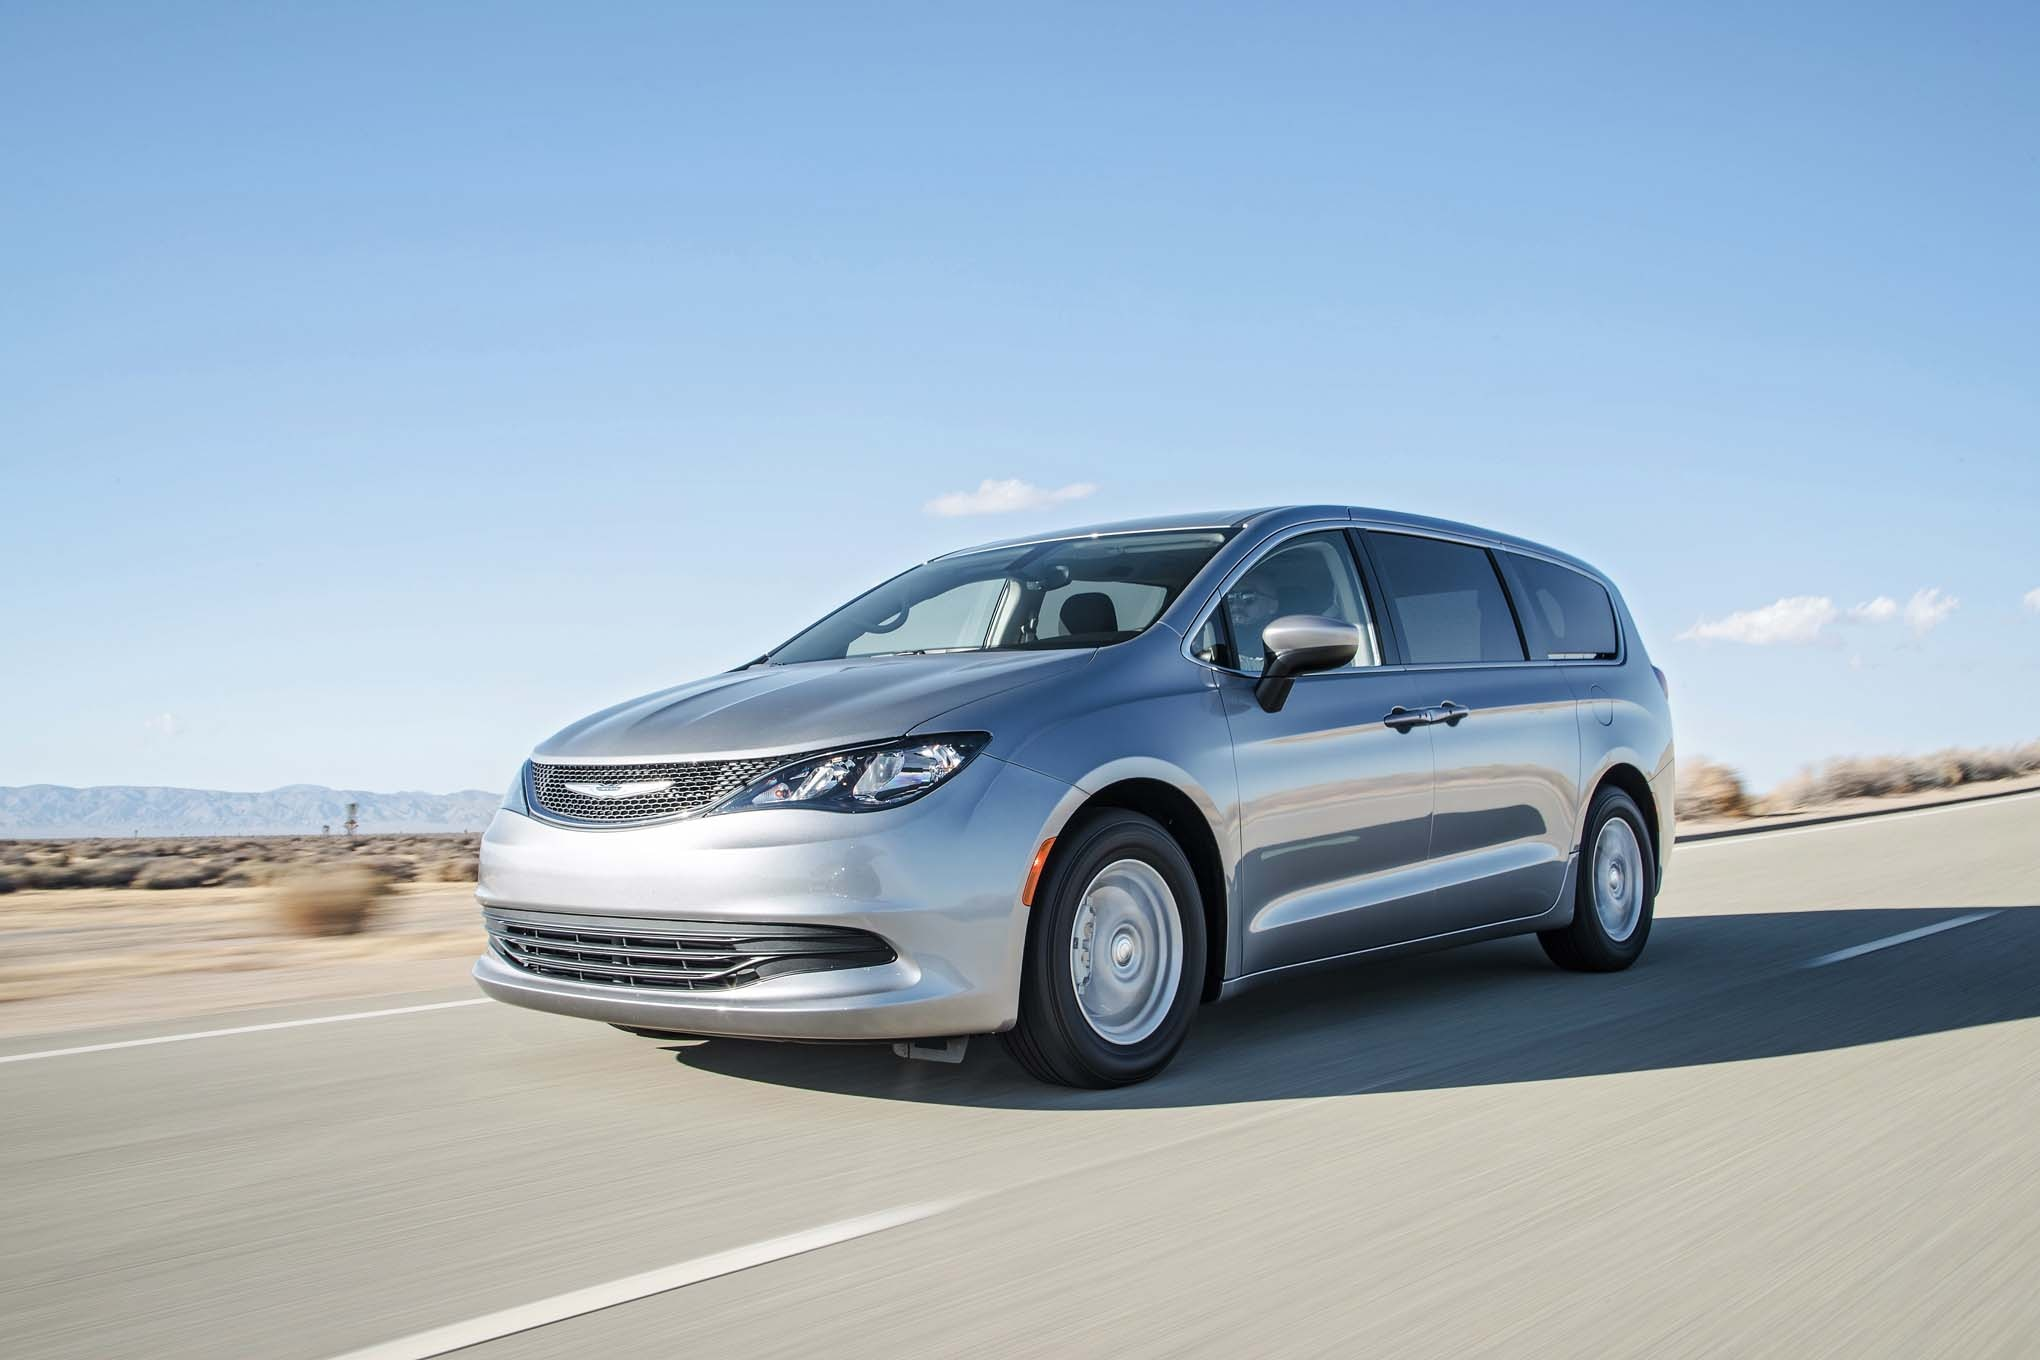 2017 Chrysler Pacifica Limited front three quarter in motion 04